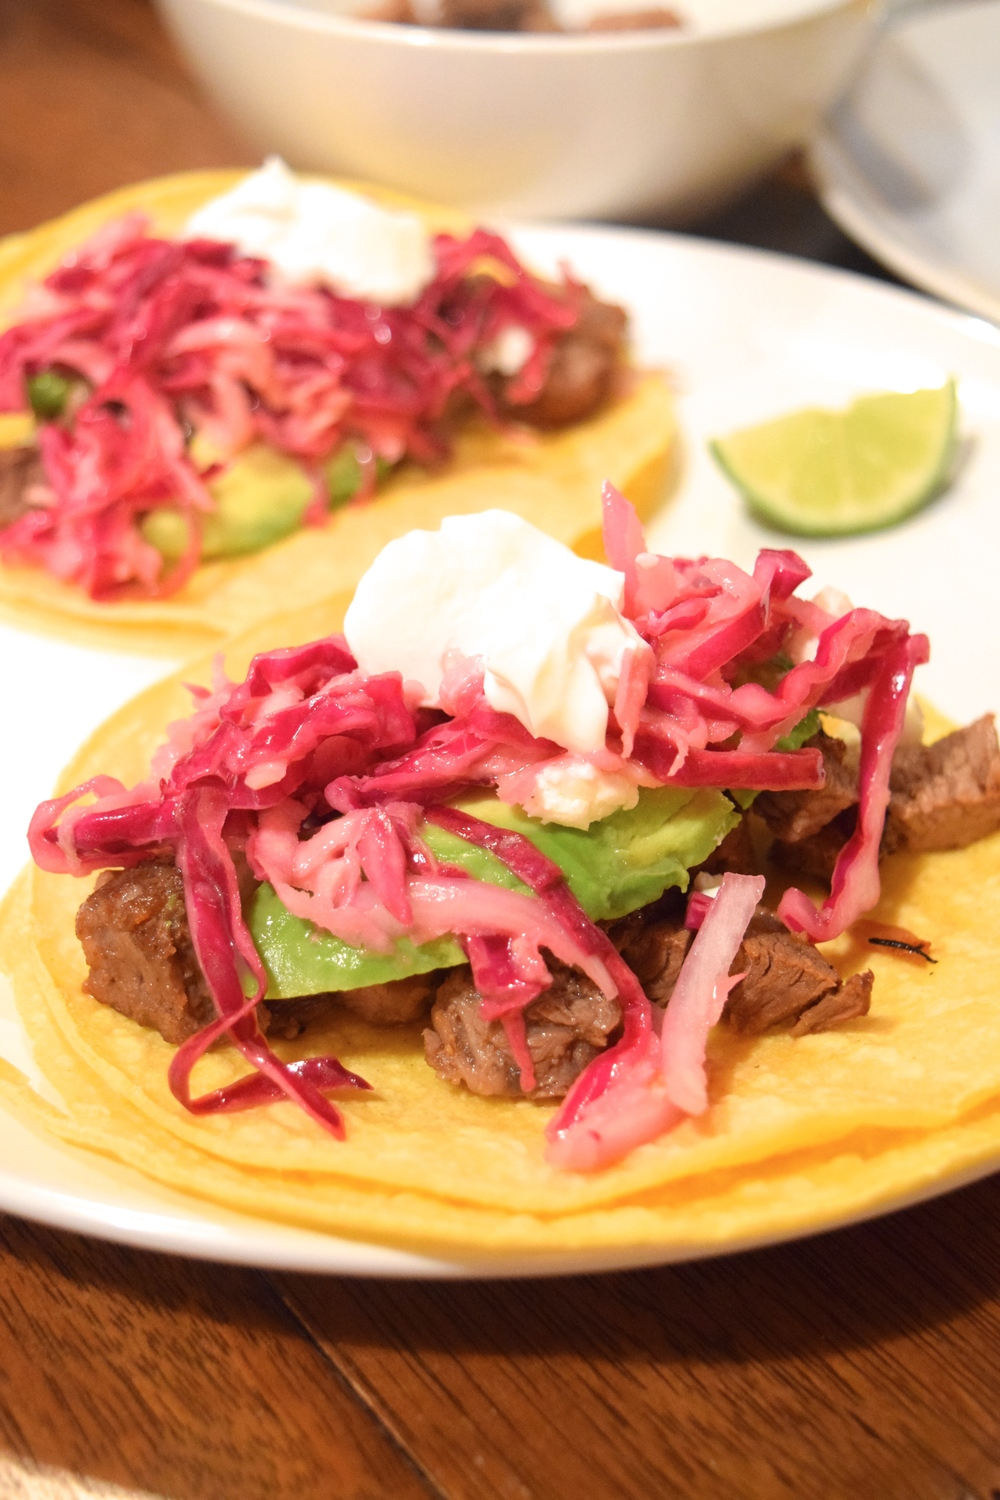 Steak tacos. Just cube the meat and toss in pan with some seasoning and onion.